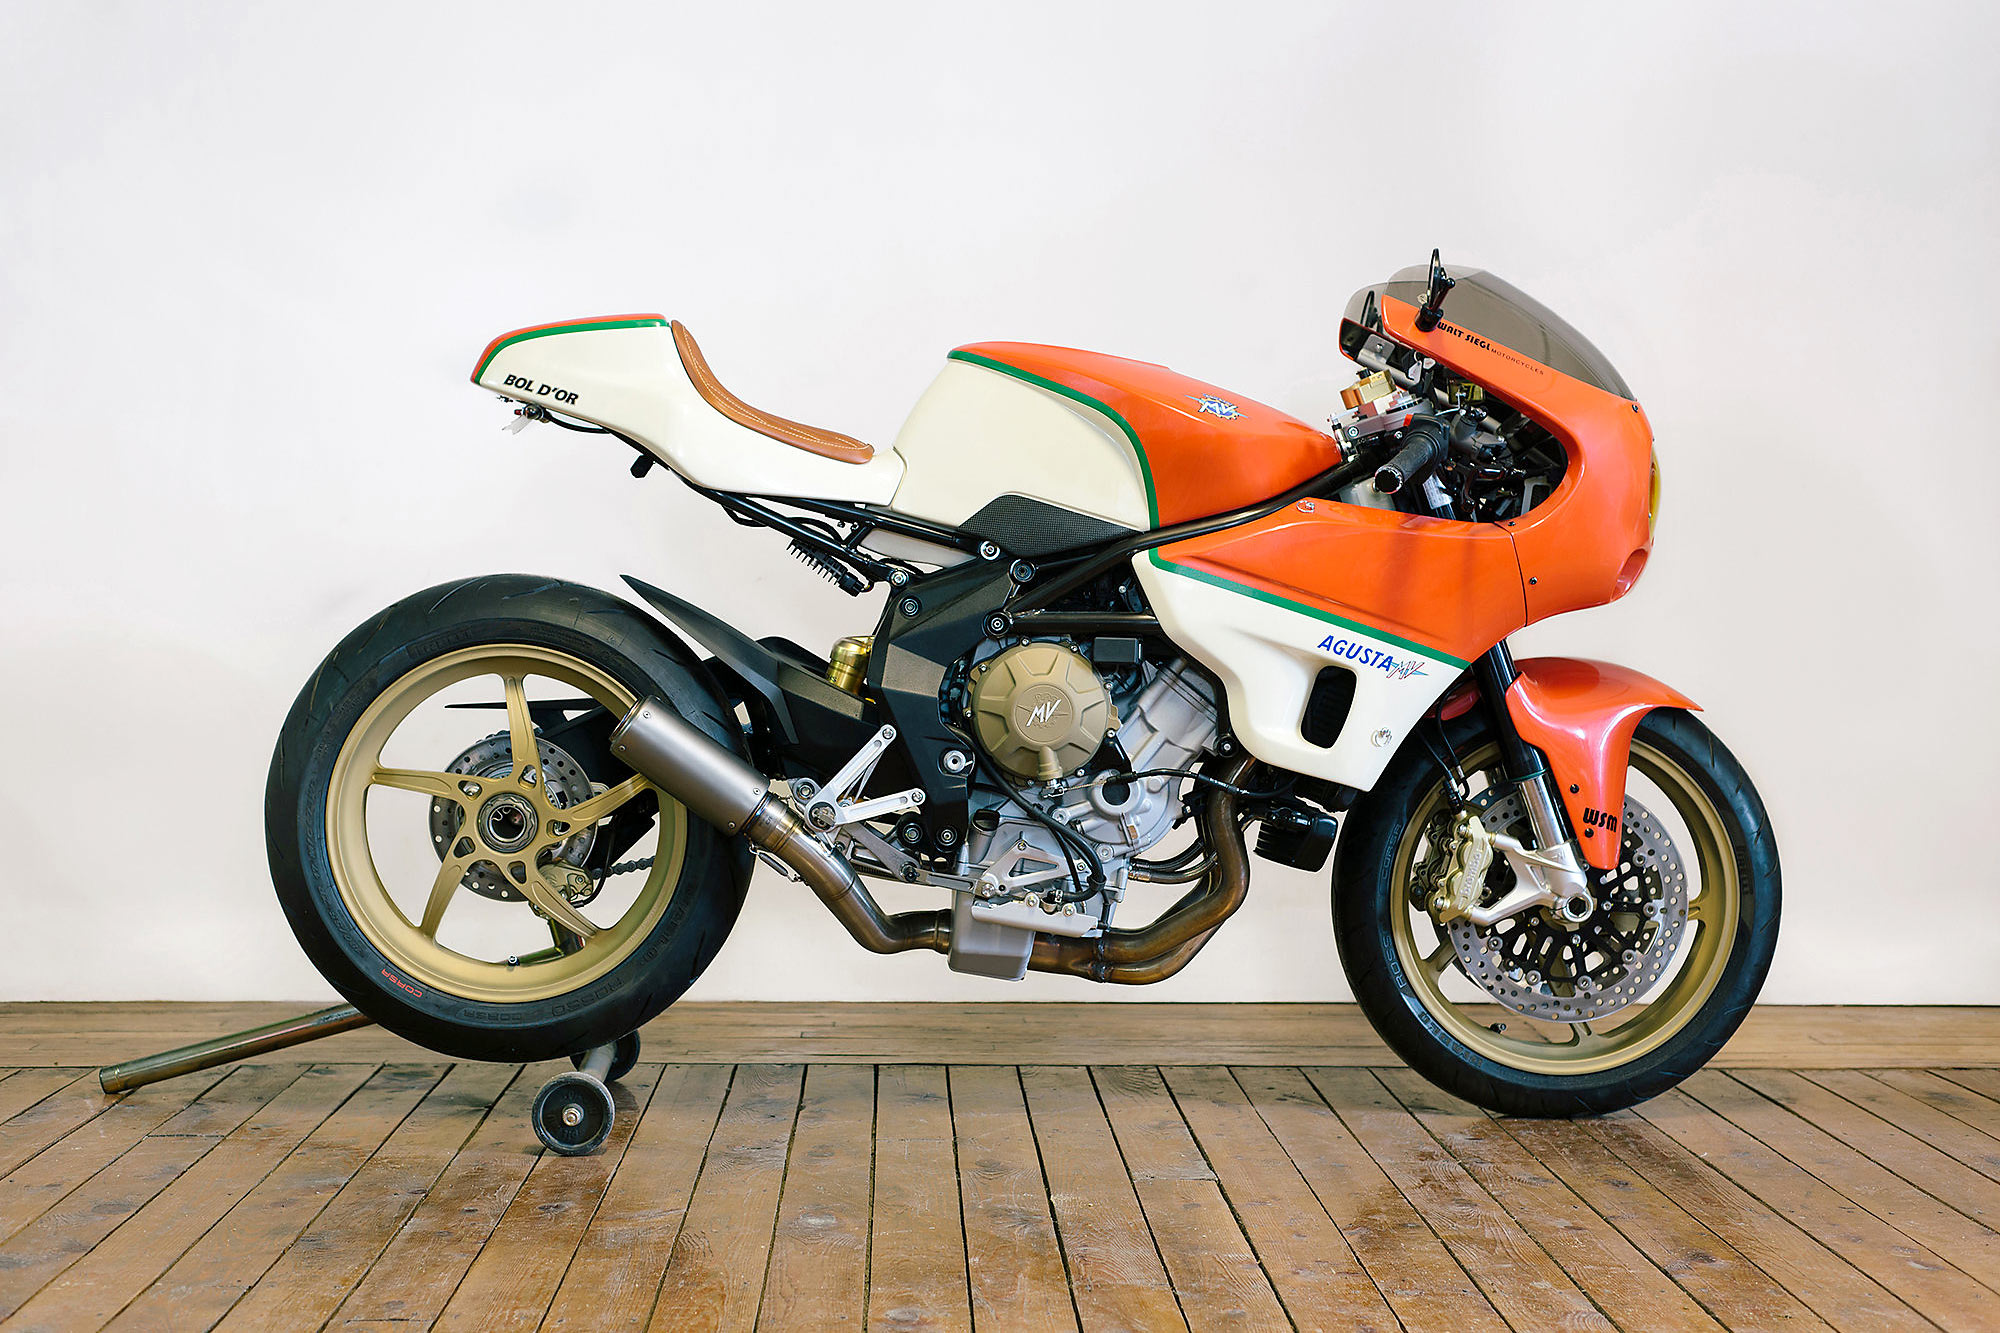 d ors of perfection walt siegl s immaculate mv agusta brutale racer. Black Bedroom Furniture Sets. Home Design Ideas